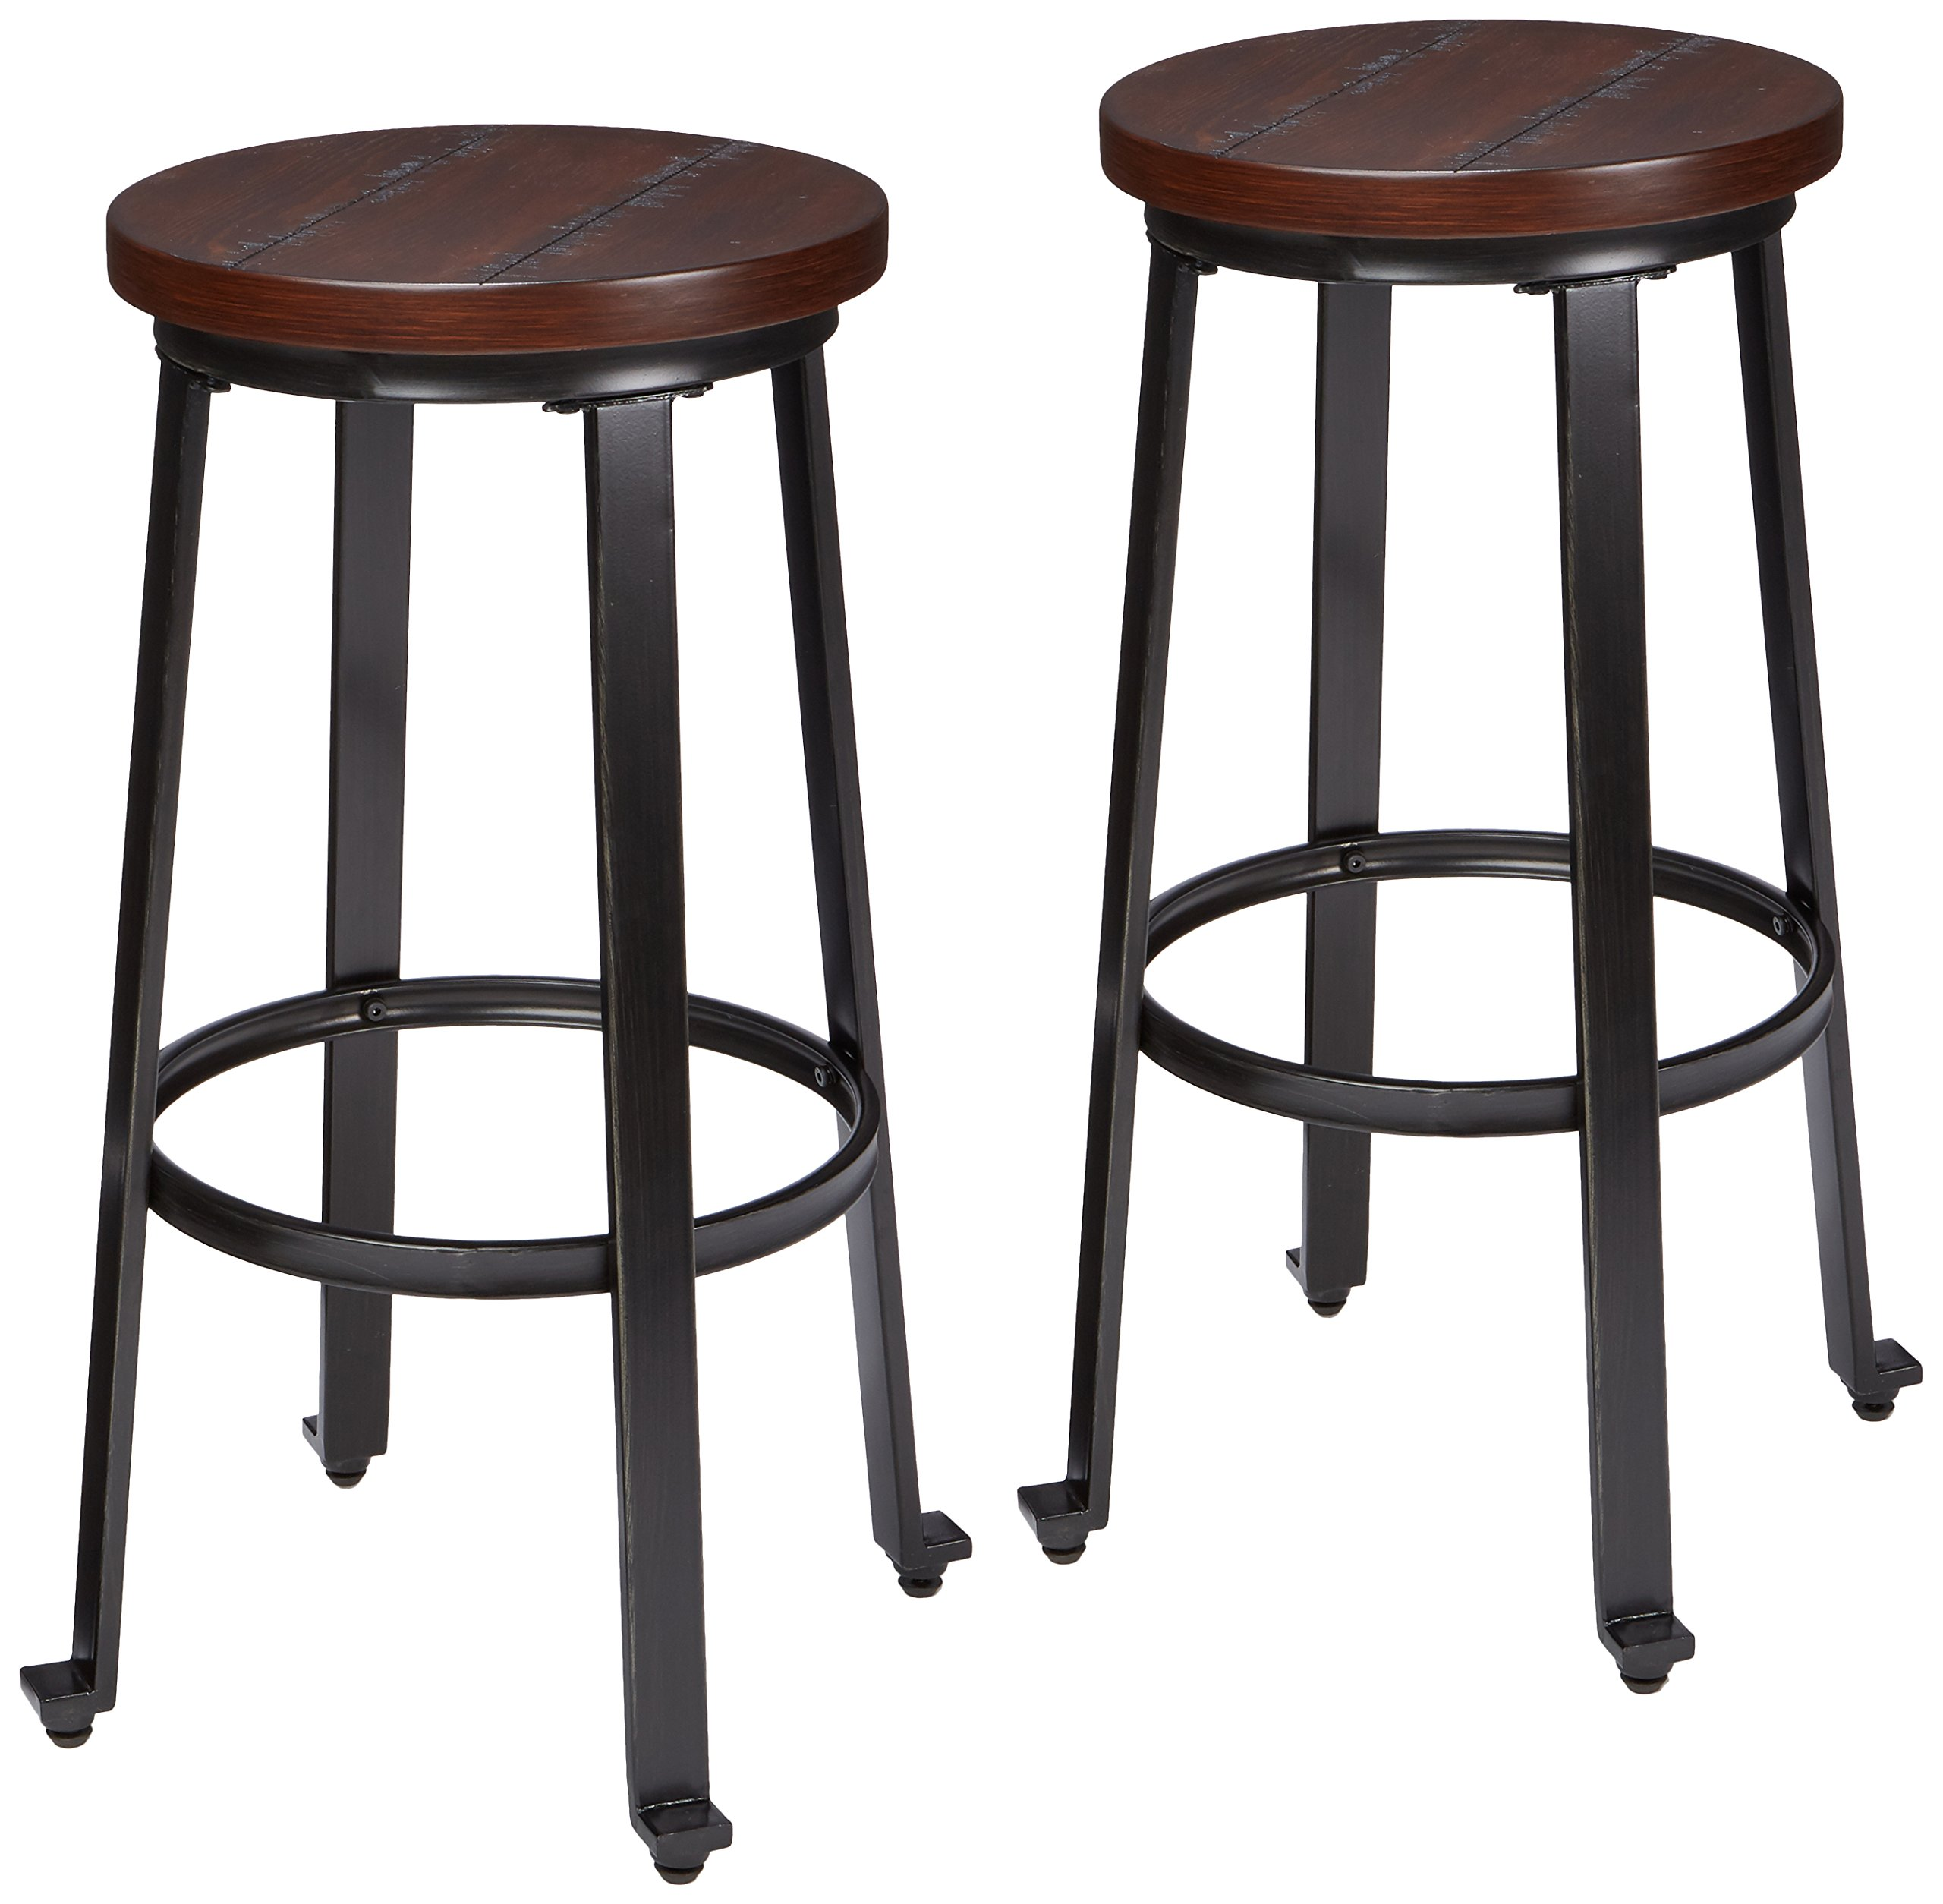 Ashley Furniture Signature Design - Challiman Bar Stool - Pub Height - Set of 2 - Rustic Brown by Signature Design by Ashley